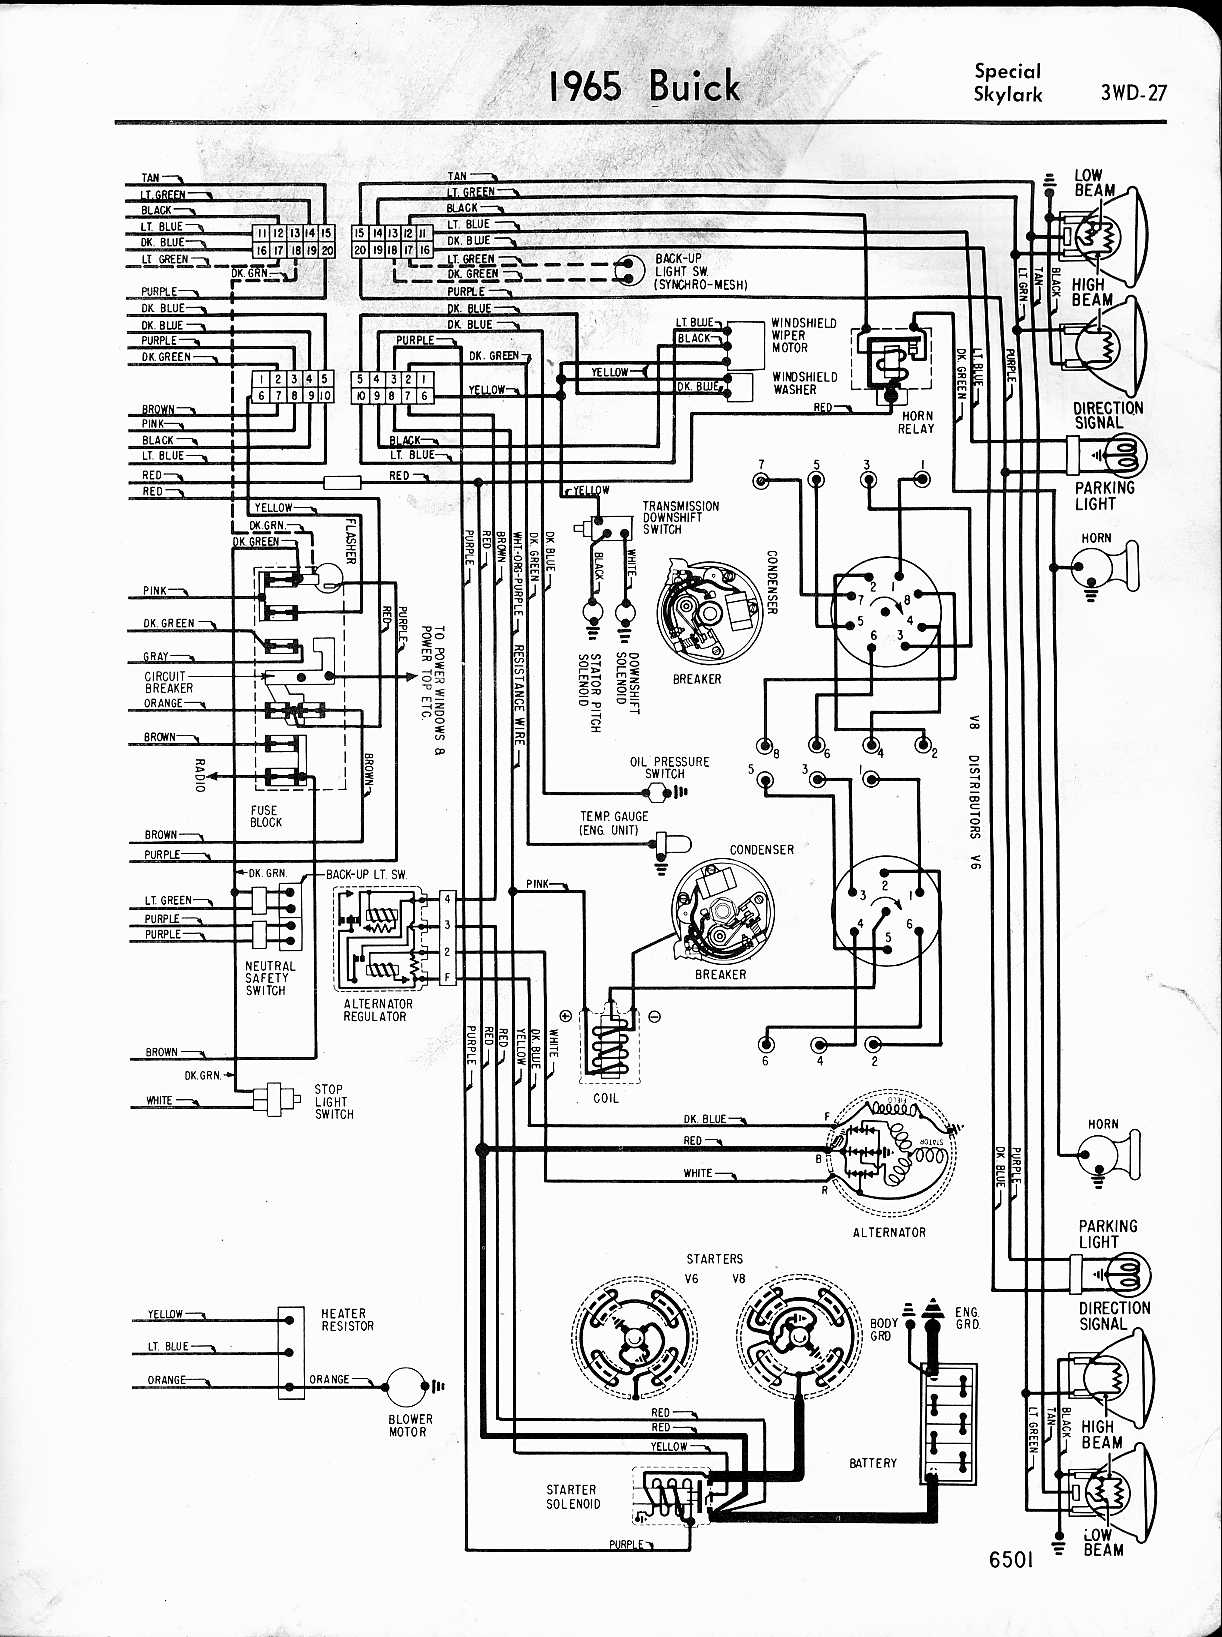 1968 buick skylark wiring diagram wiring diagram Buick Headlight Wiring Diagram buick wiring diagrams 1957 19651965 special, skylark right half